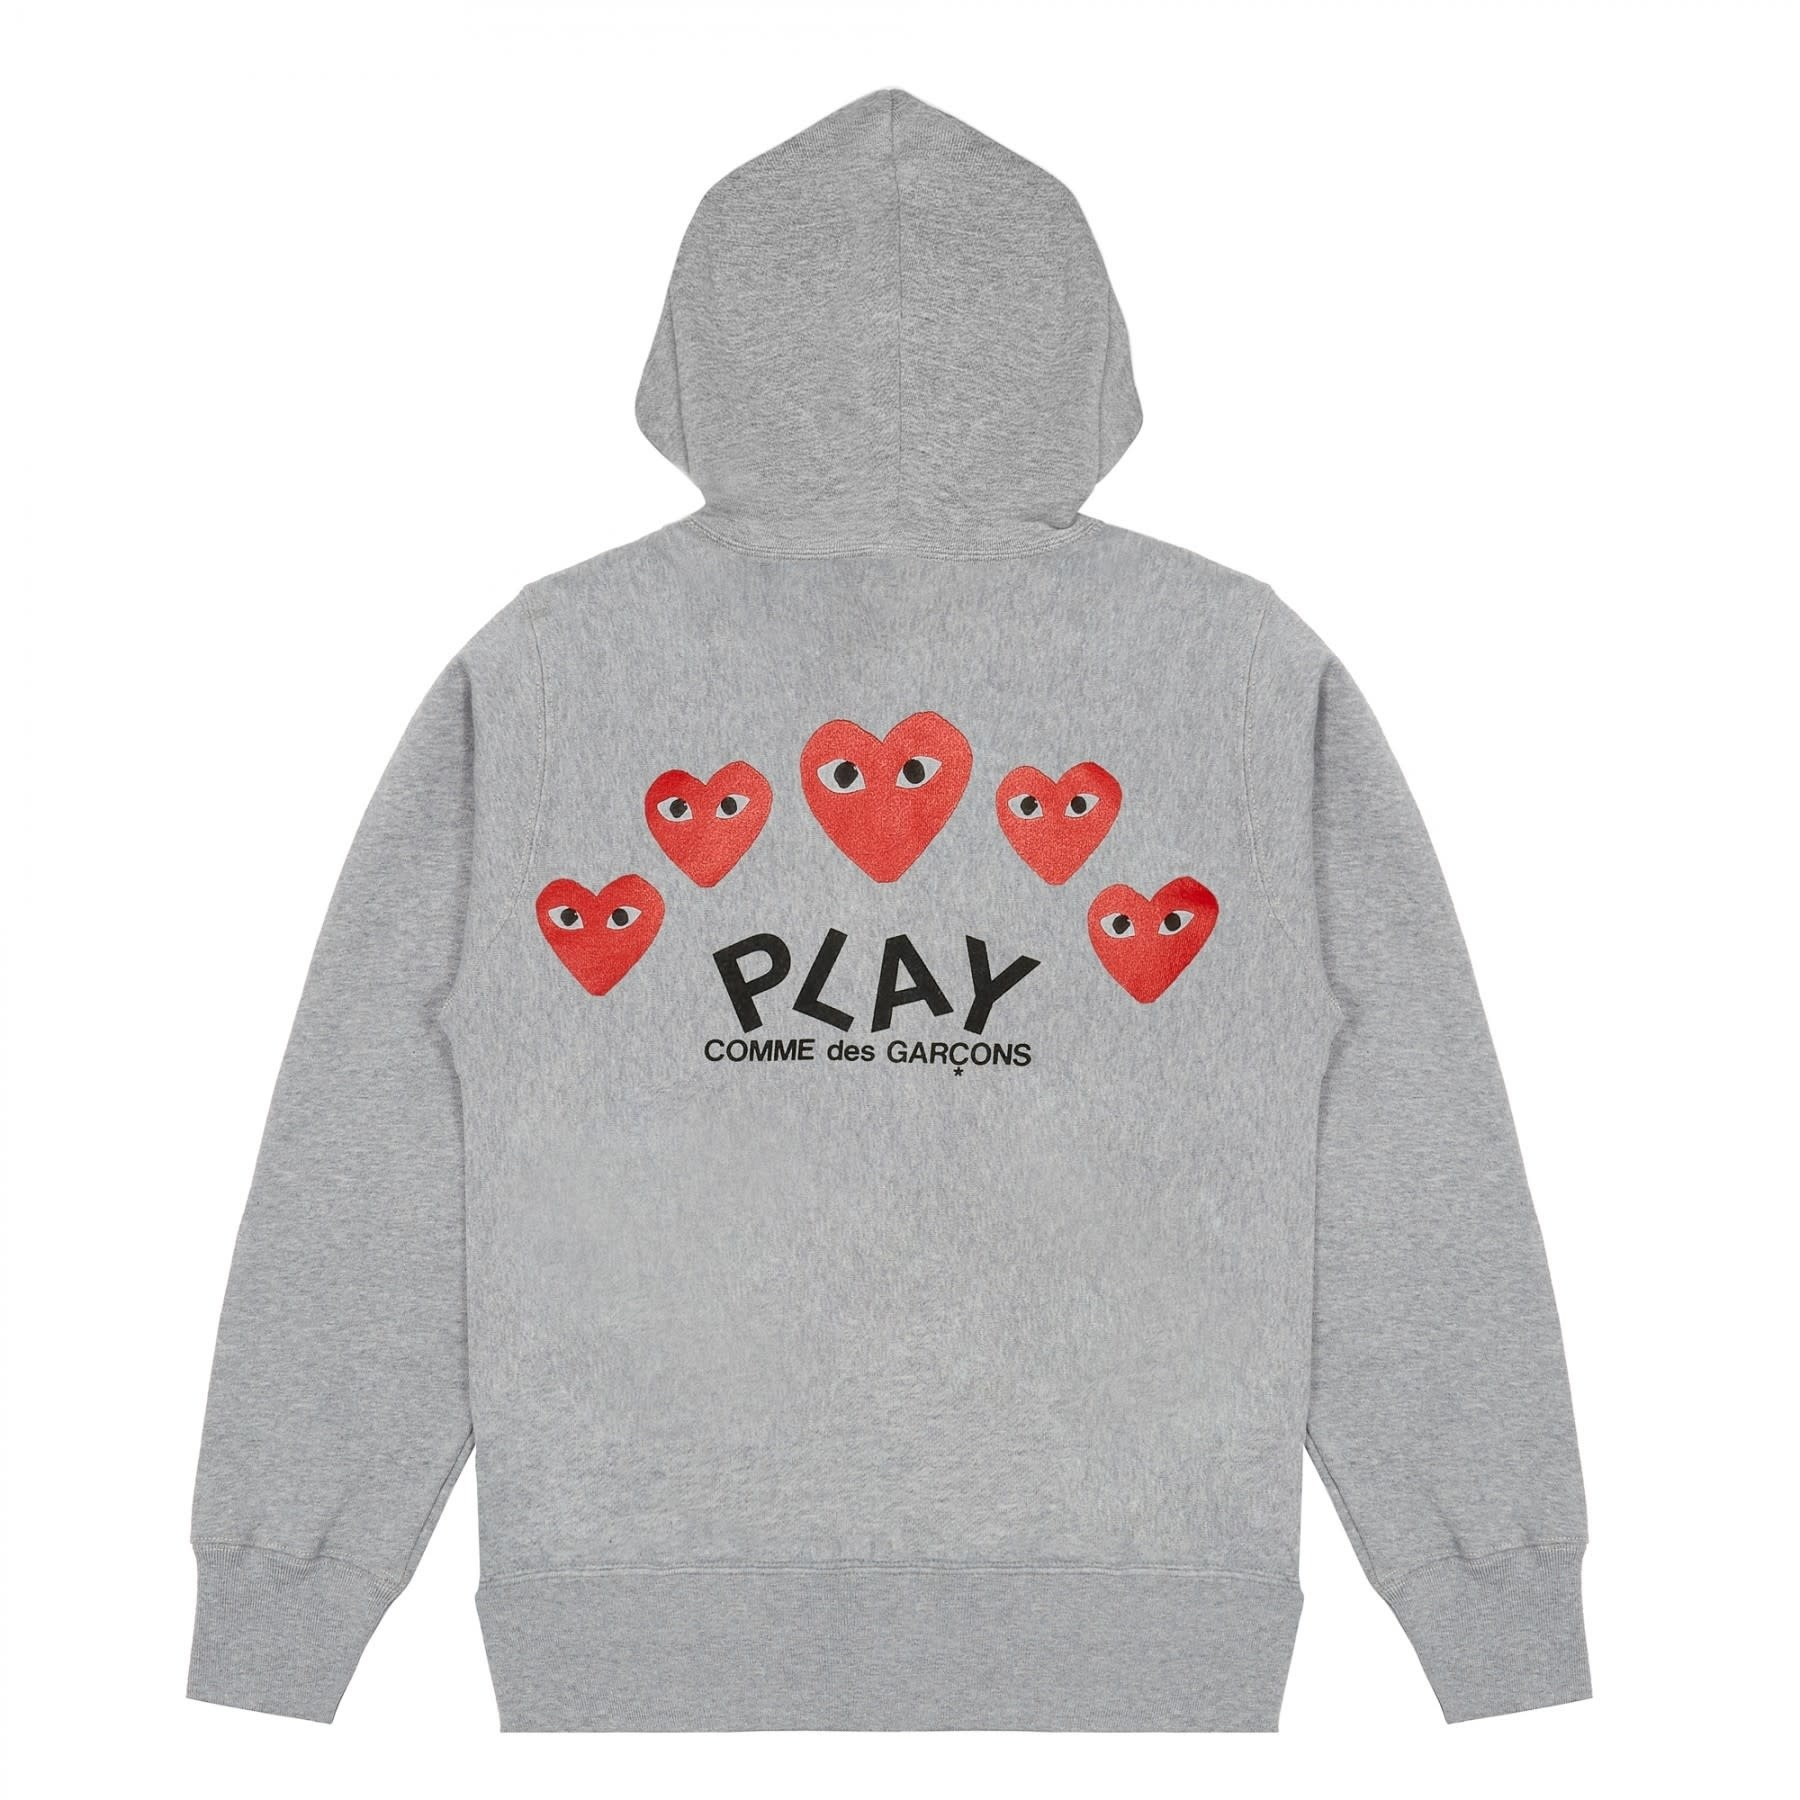 COMME des GARÇONS PLAY Grey Zip Hoodie with Back Print